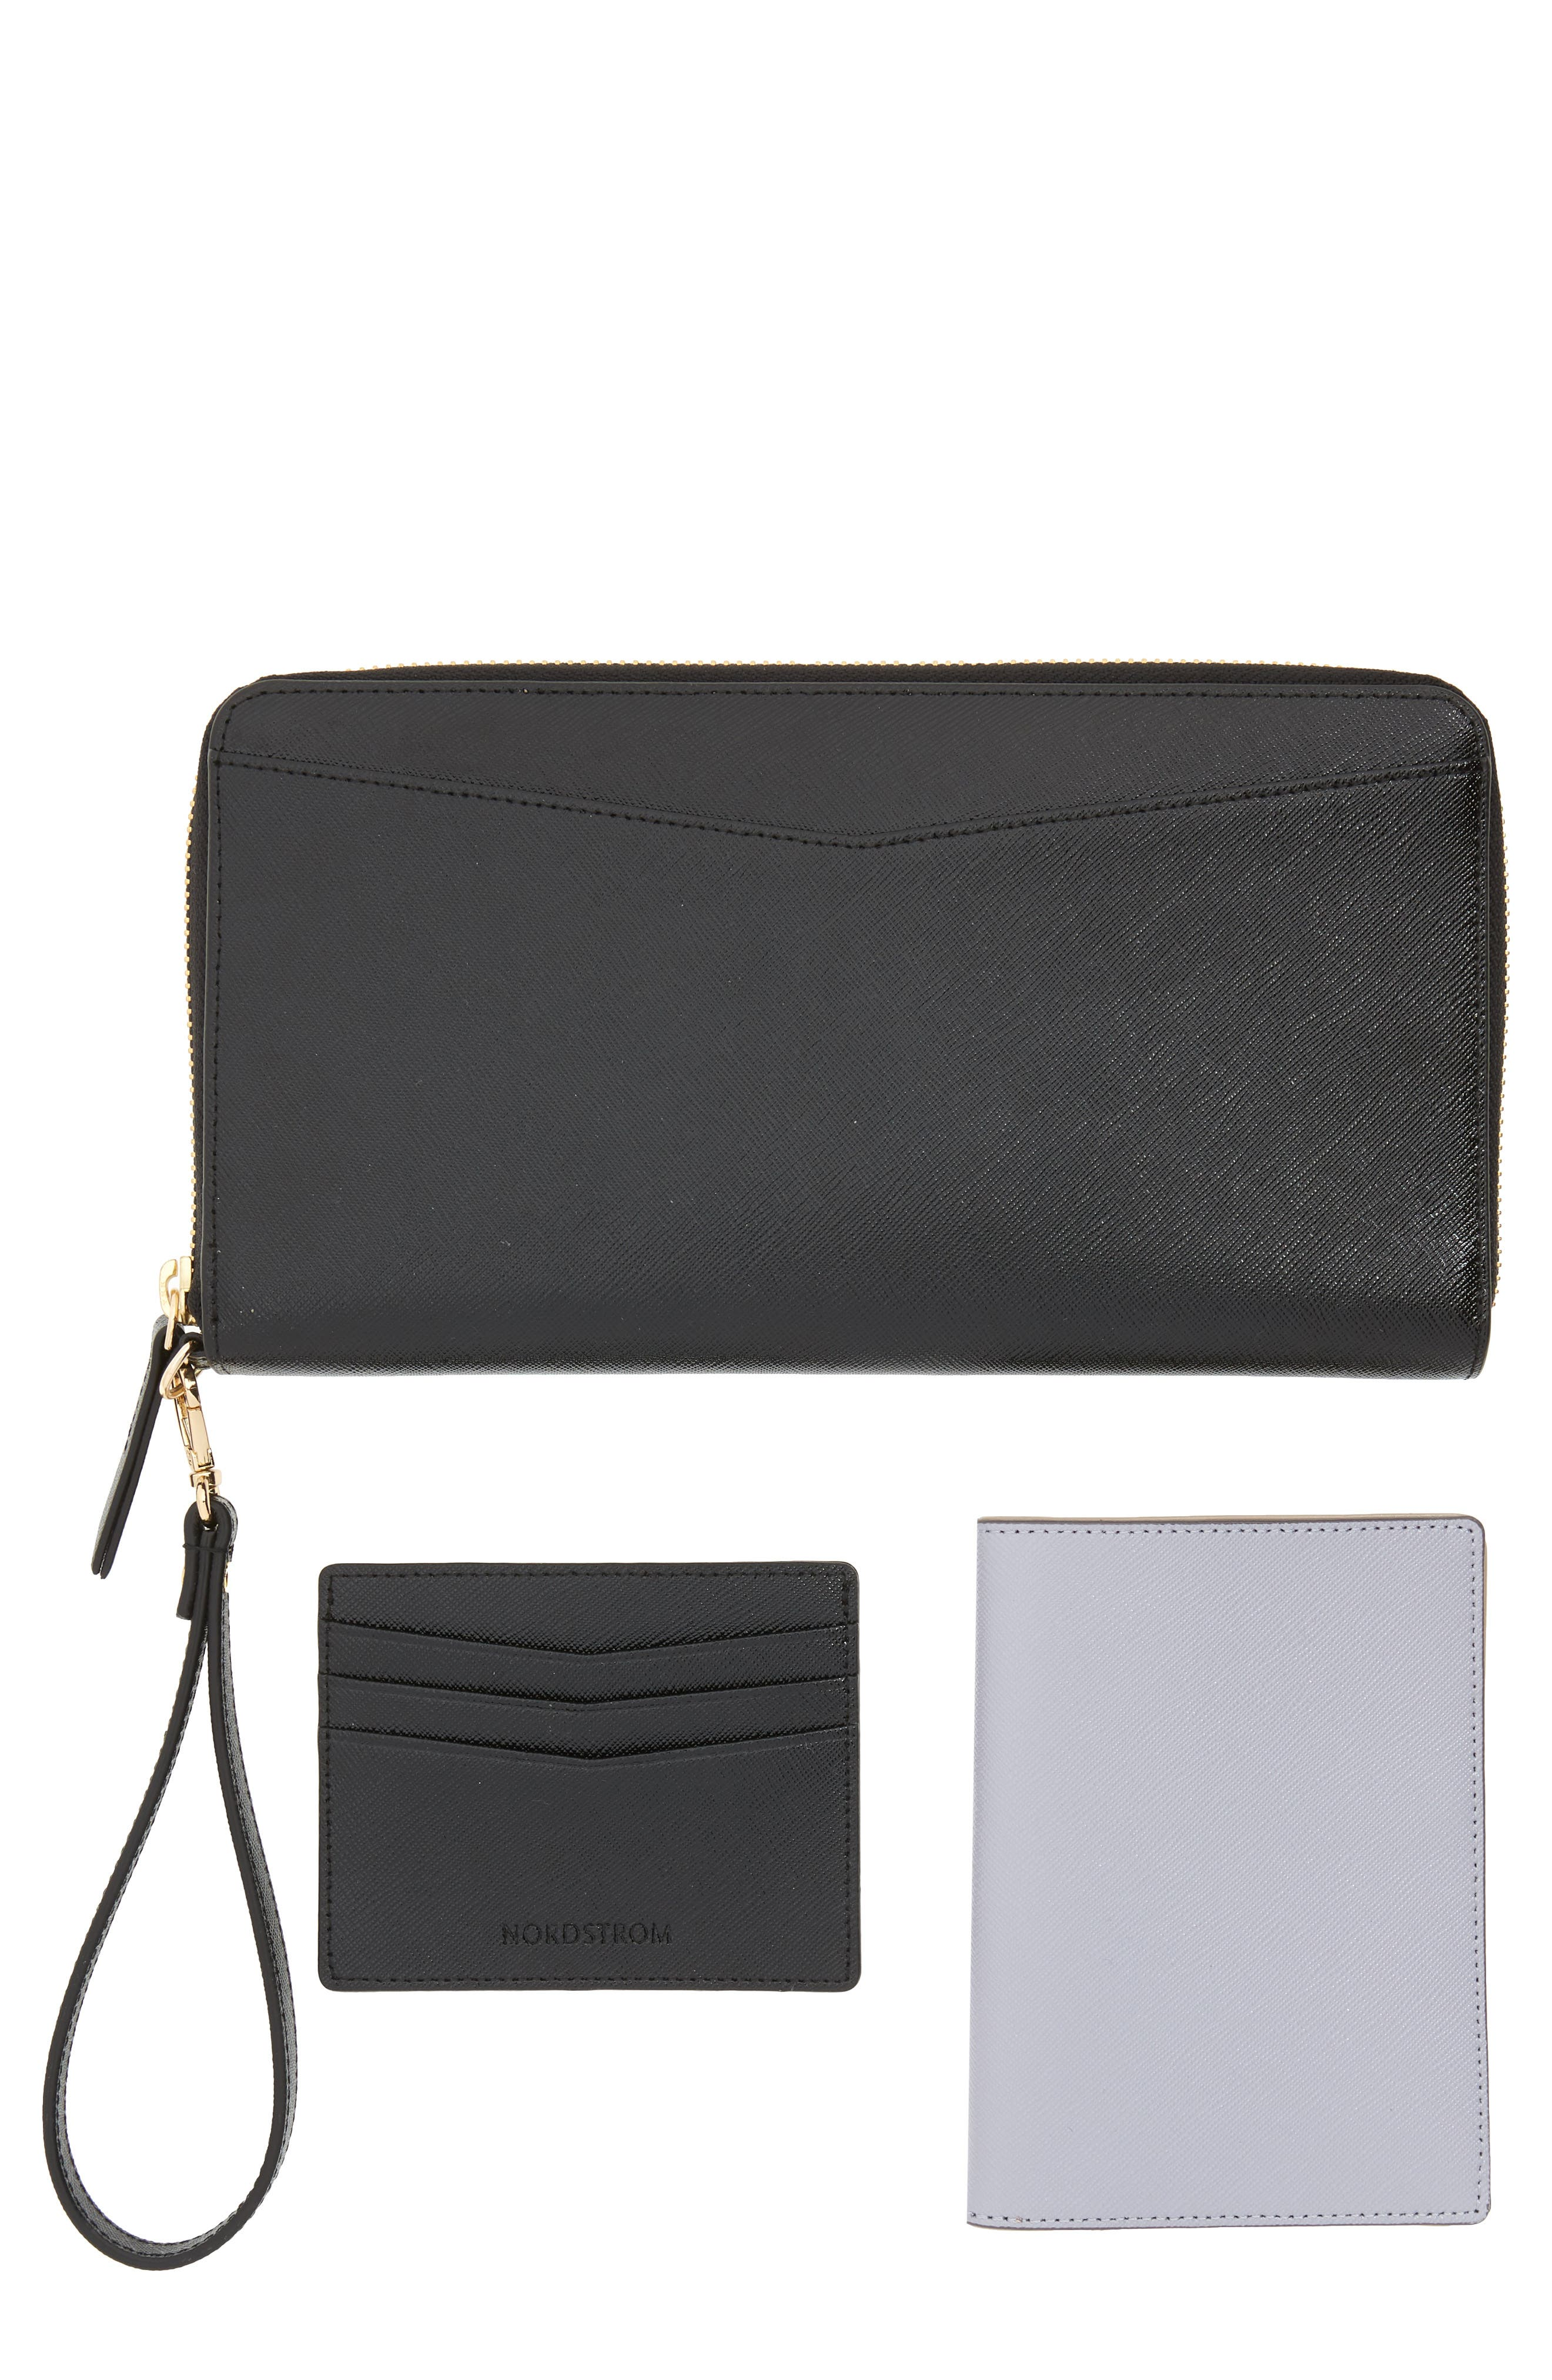 NORDSTROM Leather Travel Organizer, Main, color, BLACK